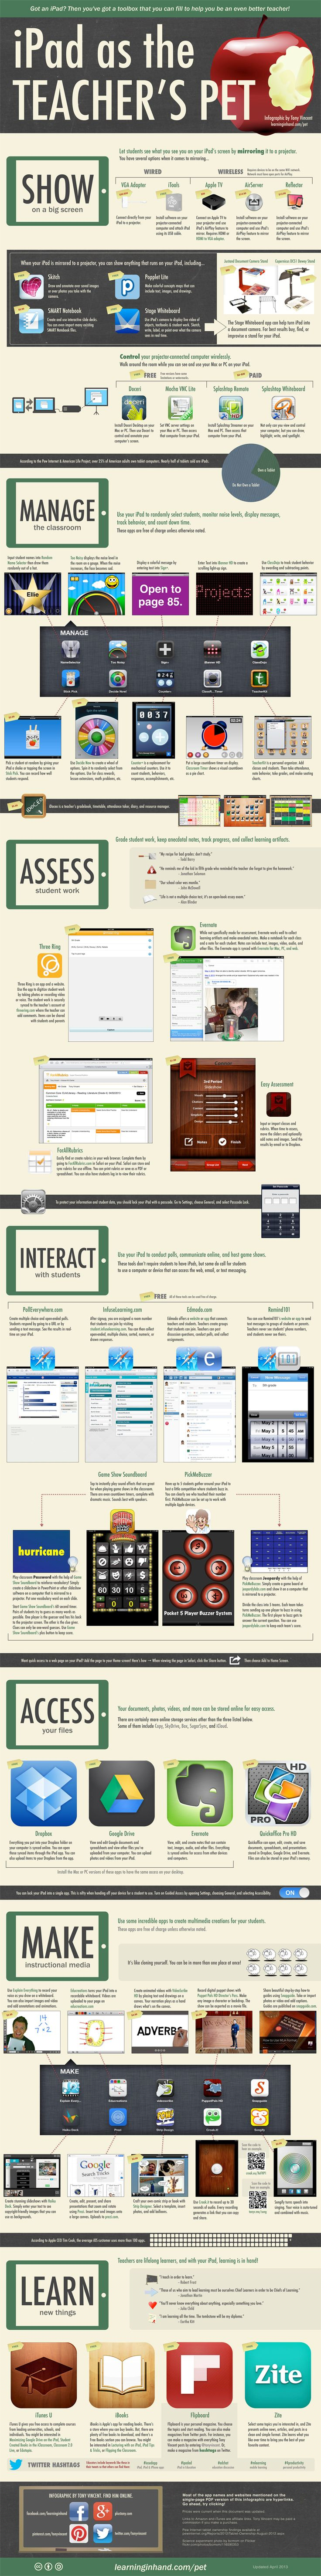 The infographic is all about verbs, that is, the things you can do with an iPad. Those actions include showing your screen on a projector, managing the classroom, assessing student work, interacting with students, accessing your files, making instructional media, and expanding professional learning.